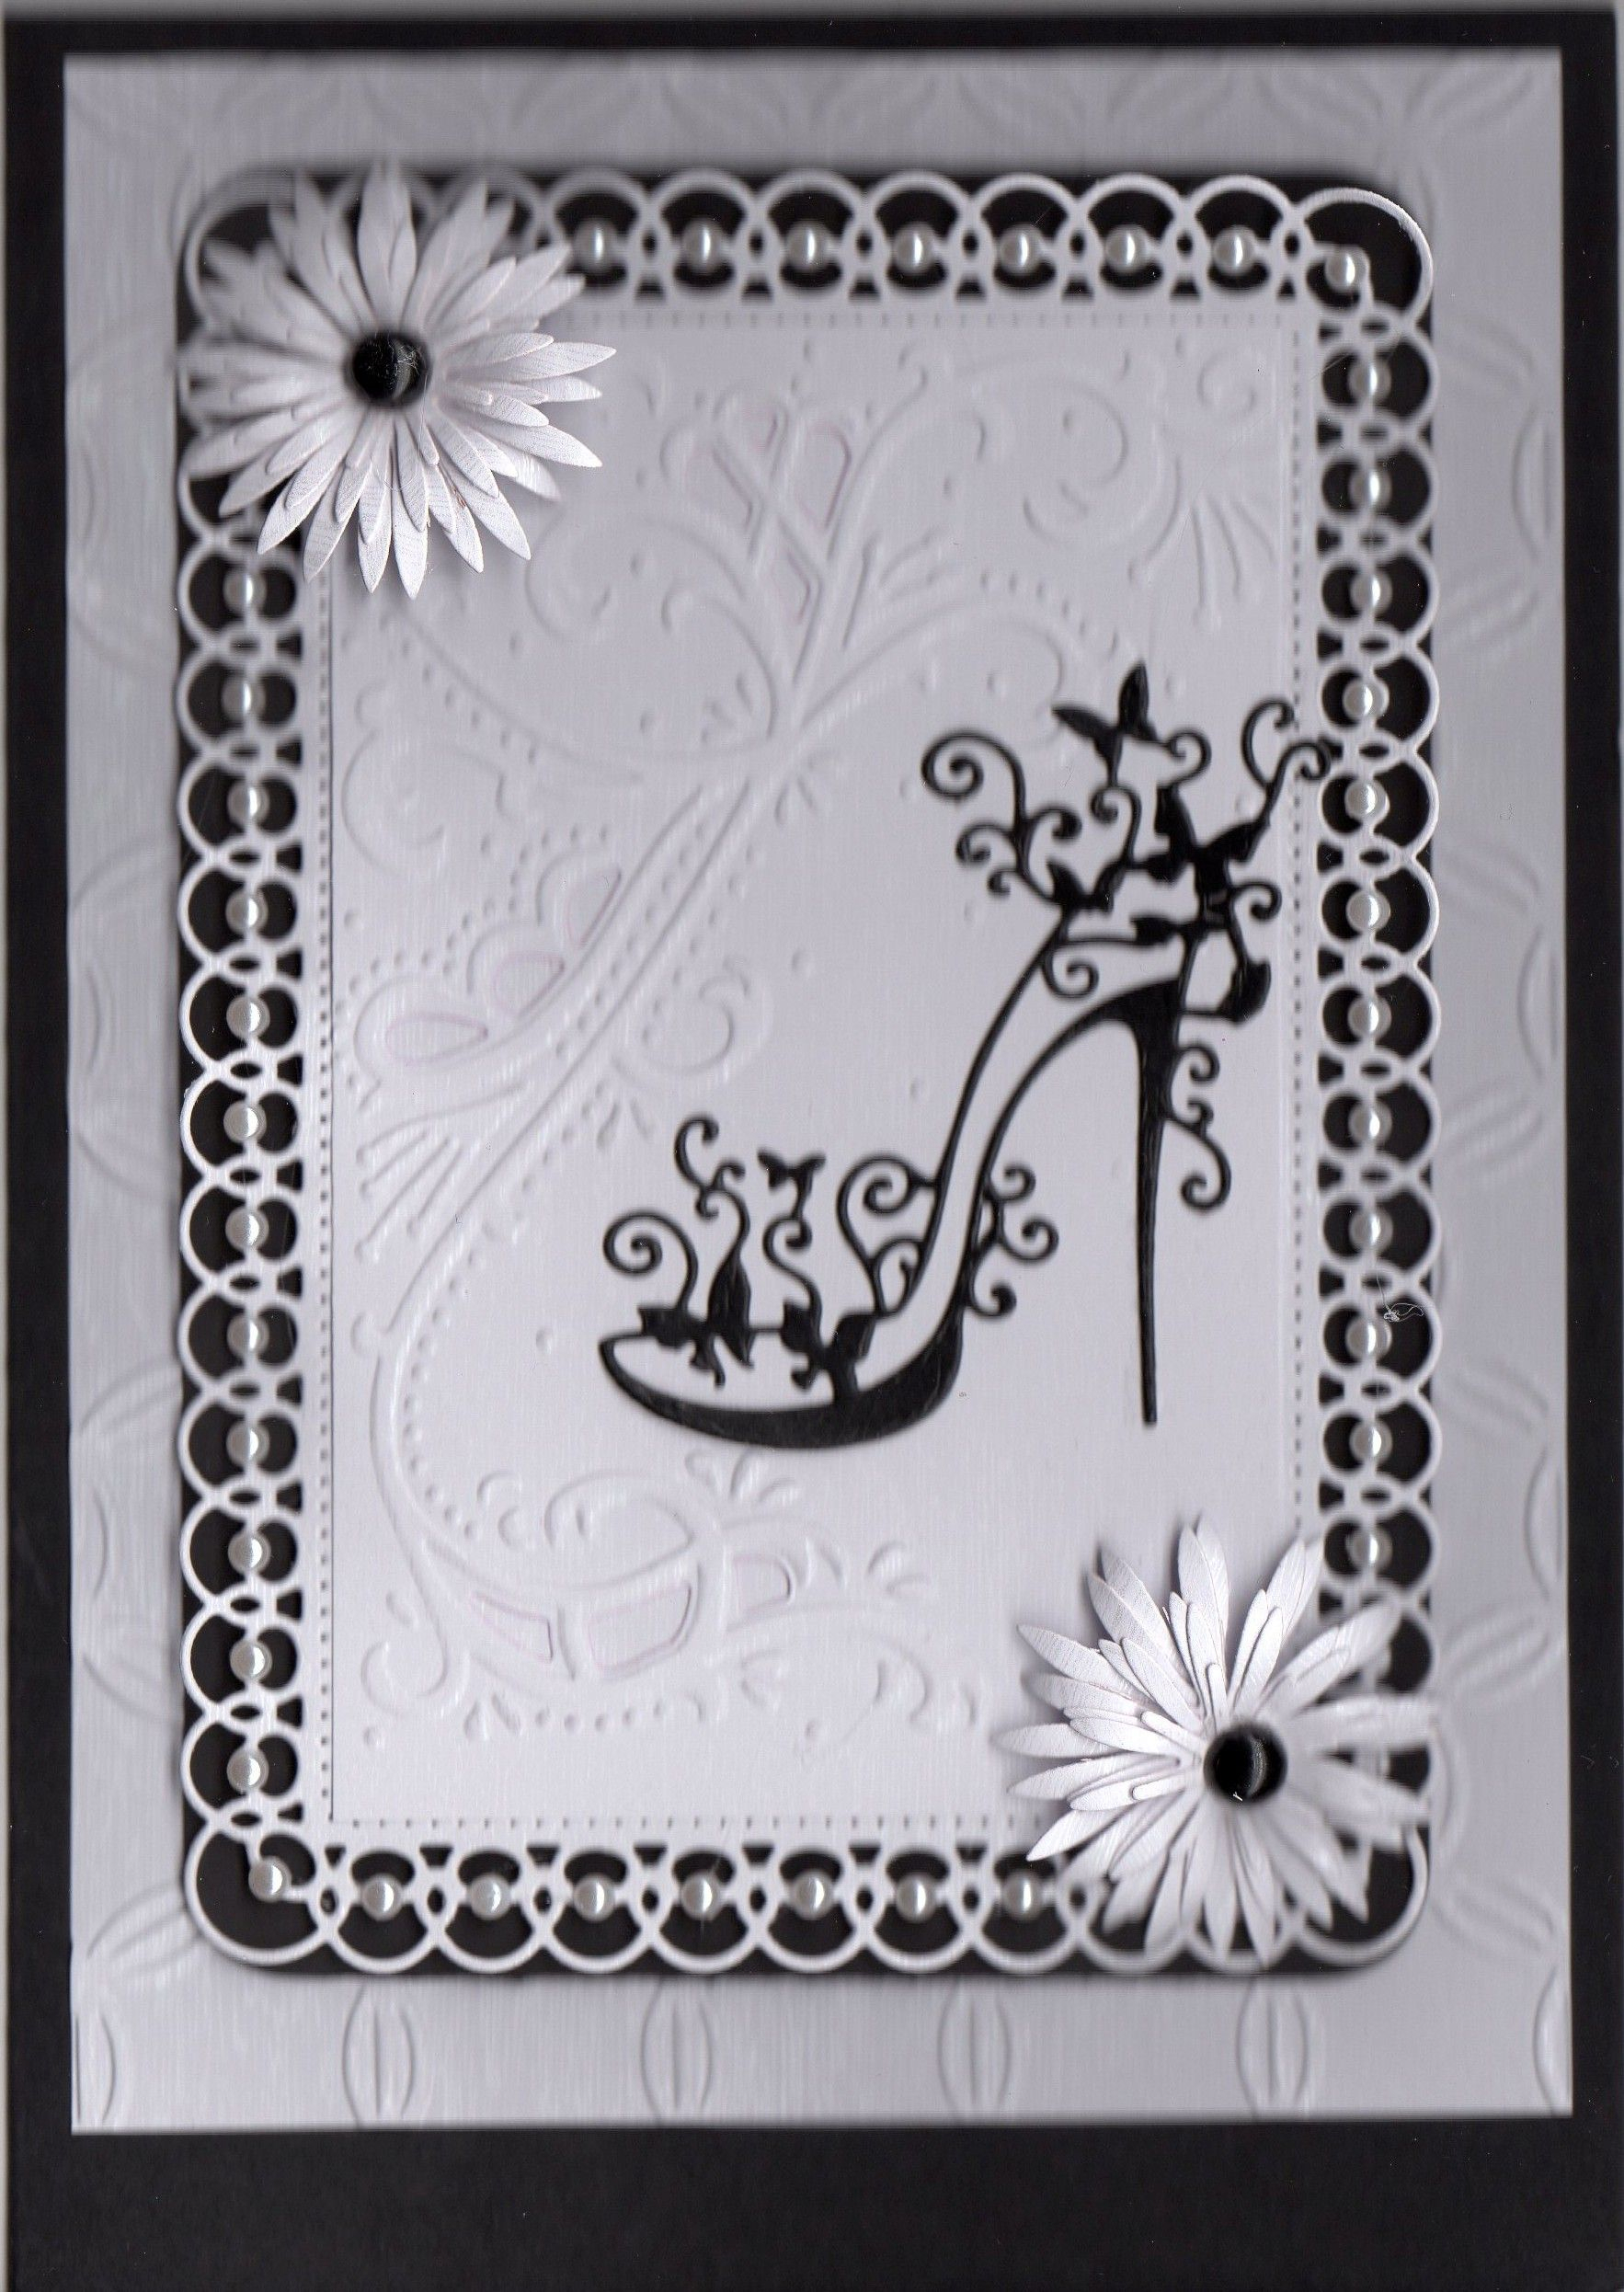 Tattered Lace Shoe Die Cards 25 Cards Tattered Lace